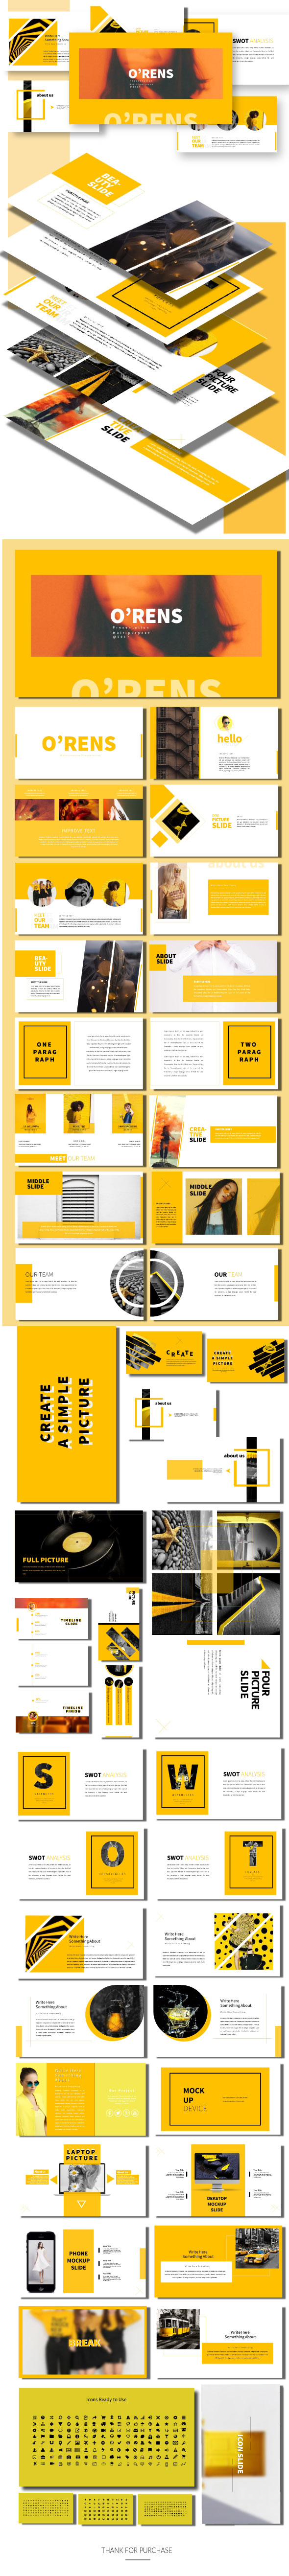 O'rens - Presentation Templates - Business PowerPoint Templates